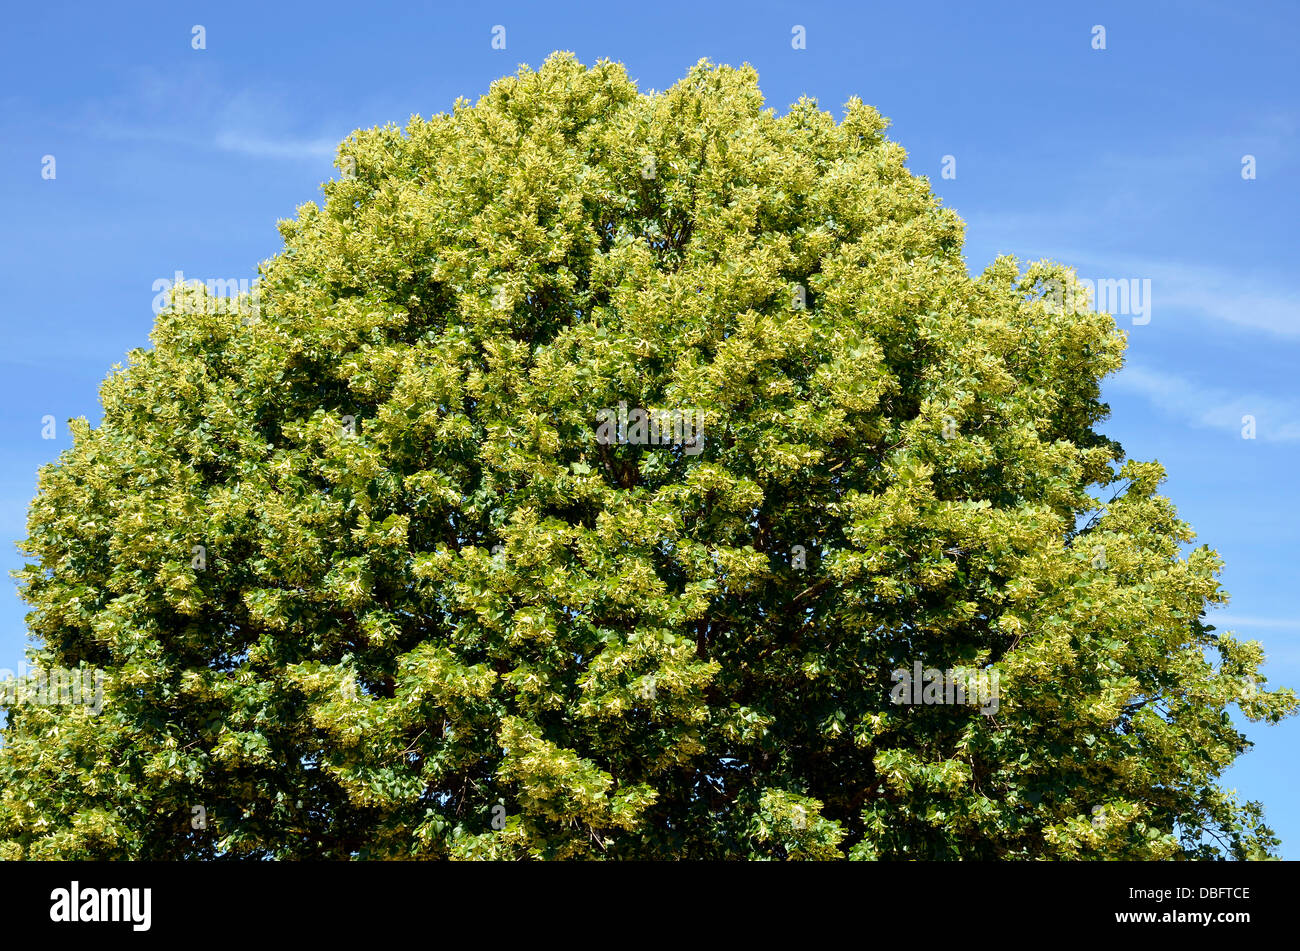 Closeup To The Foliage Of A Tilia Tree On Blue Sky Background